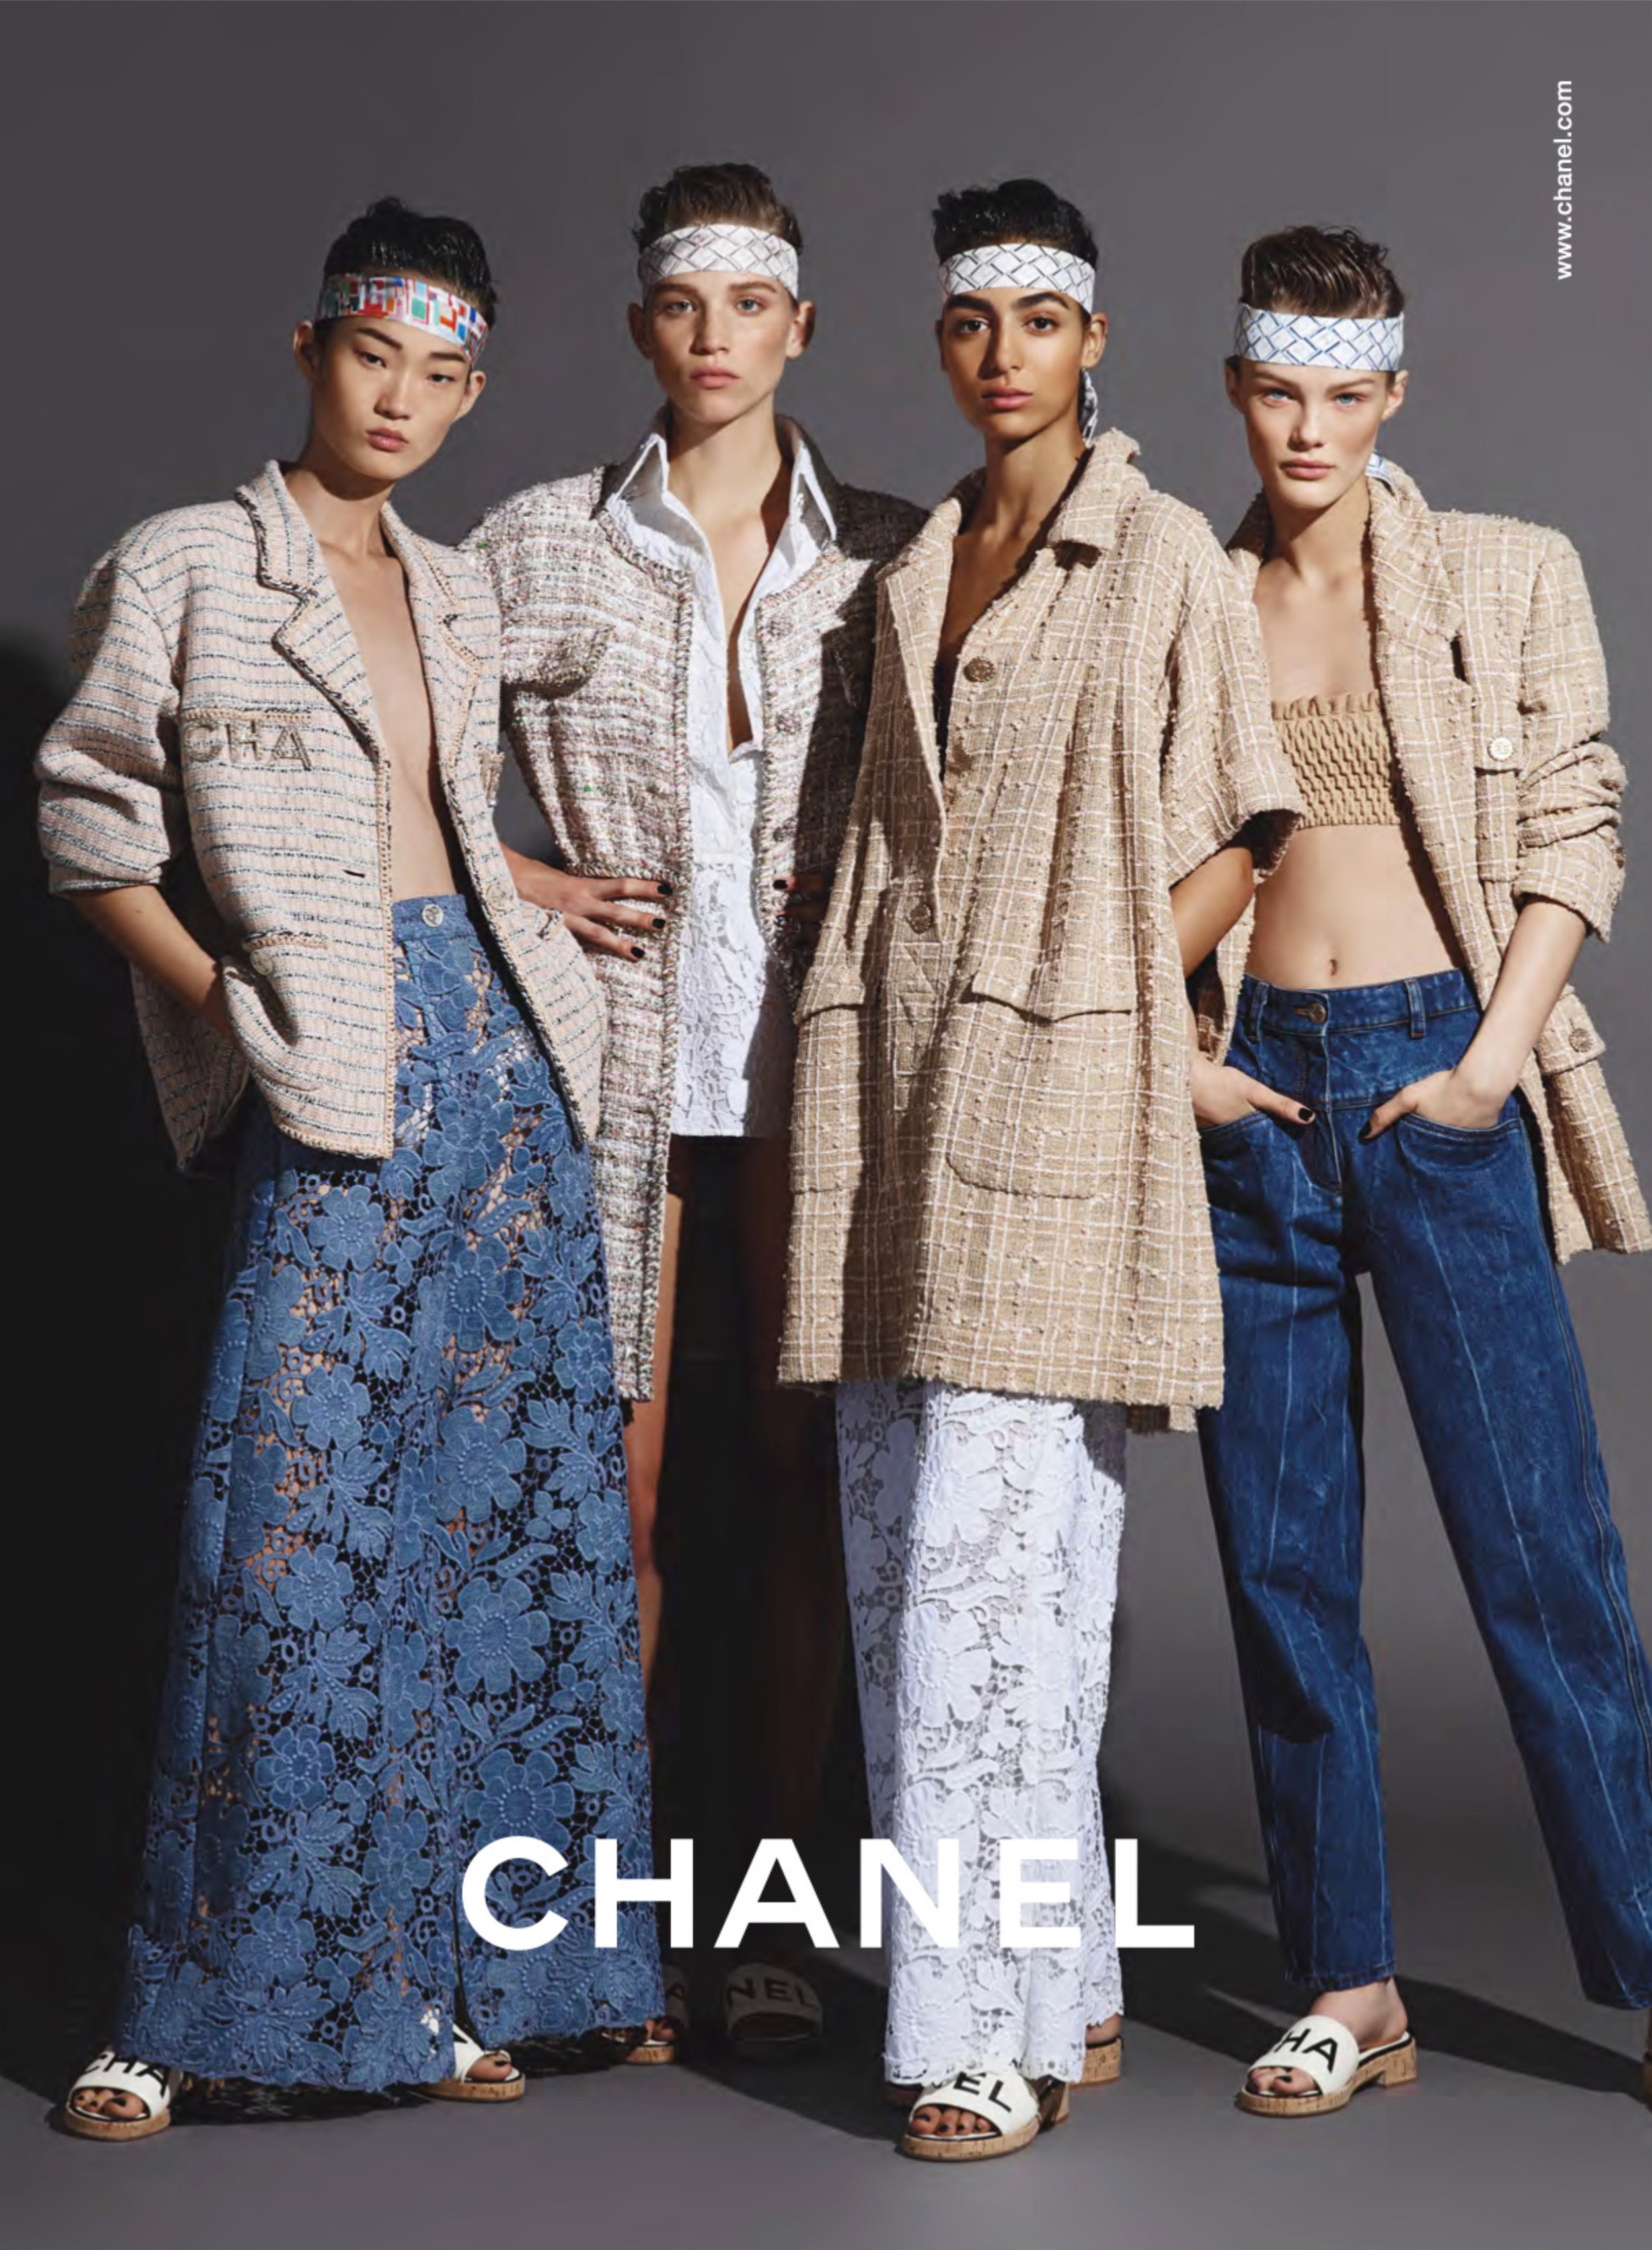 chanel_spring_2019_campaign15.jpg